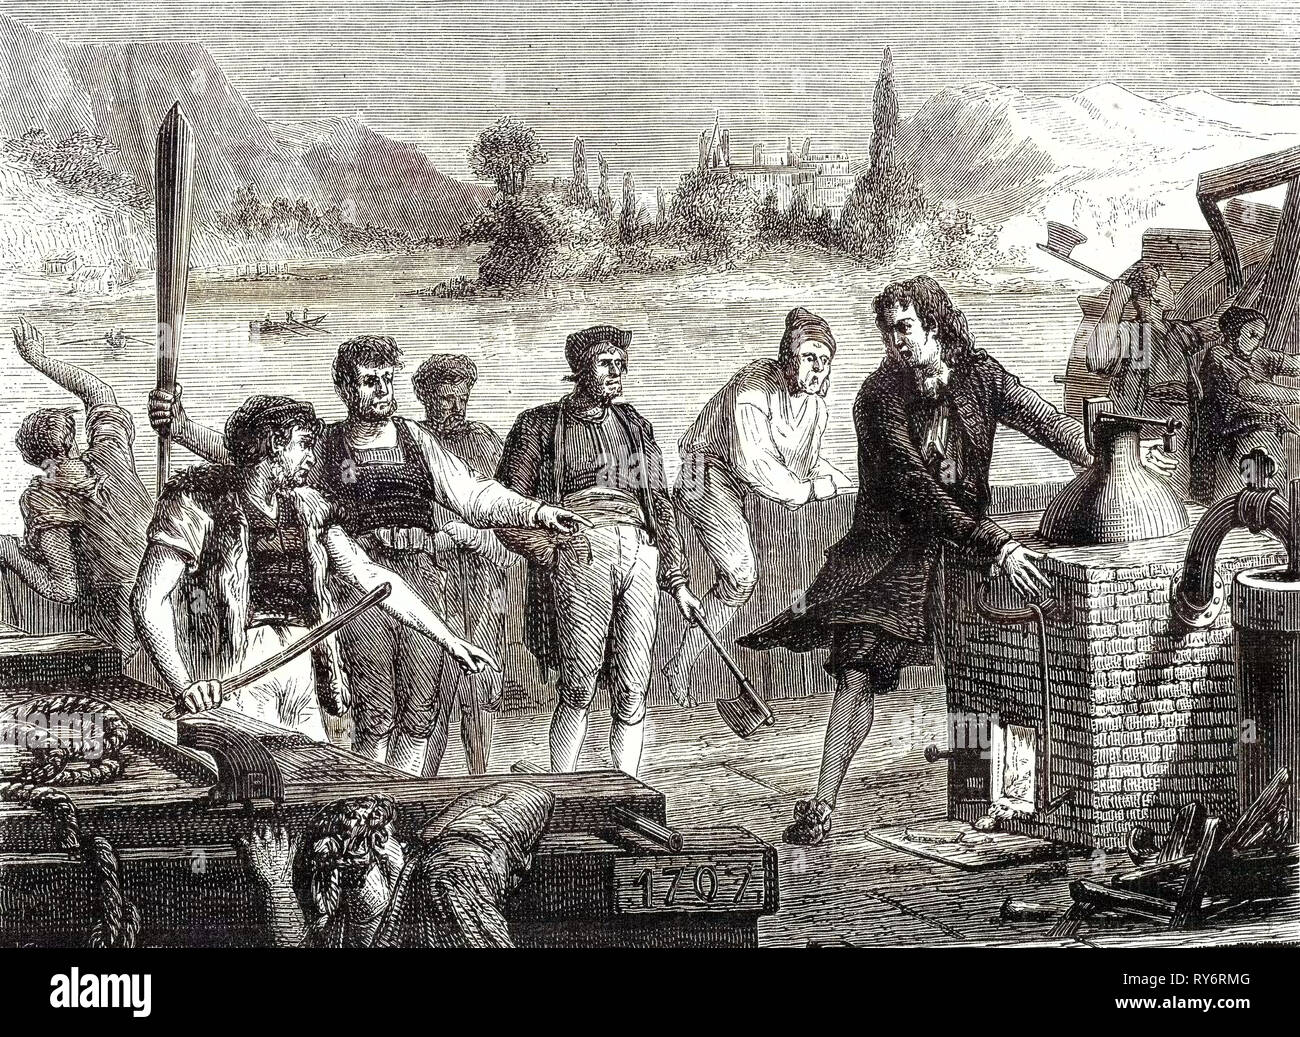 The Boatmen of the Weser Chop Papin's Steamboat in Pieces - Stock Image